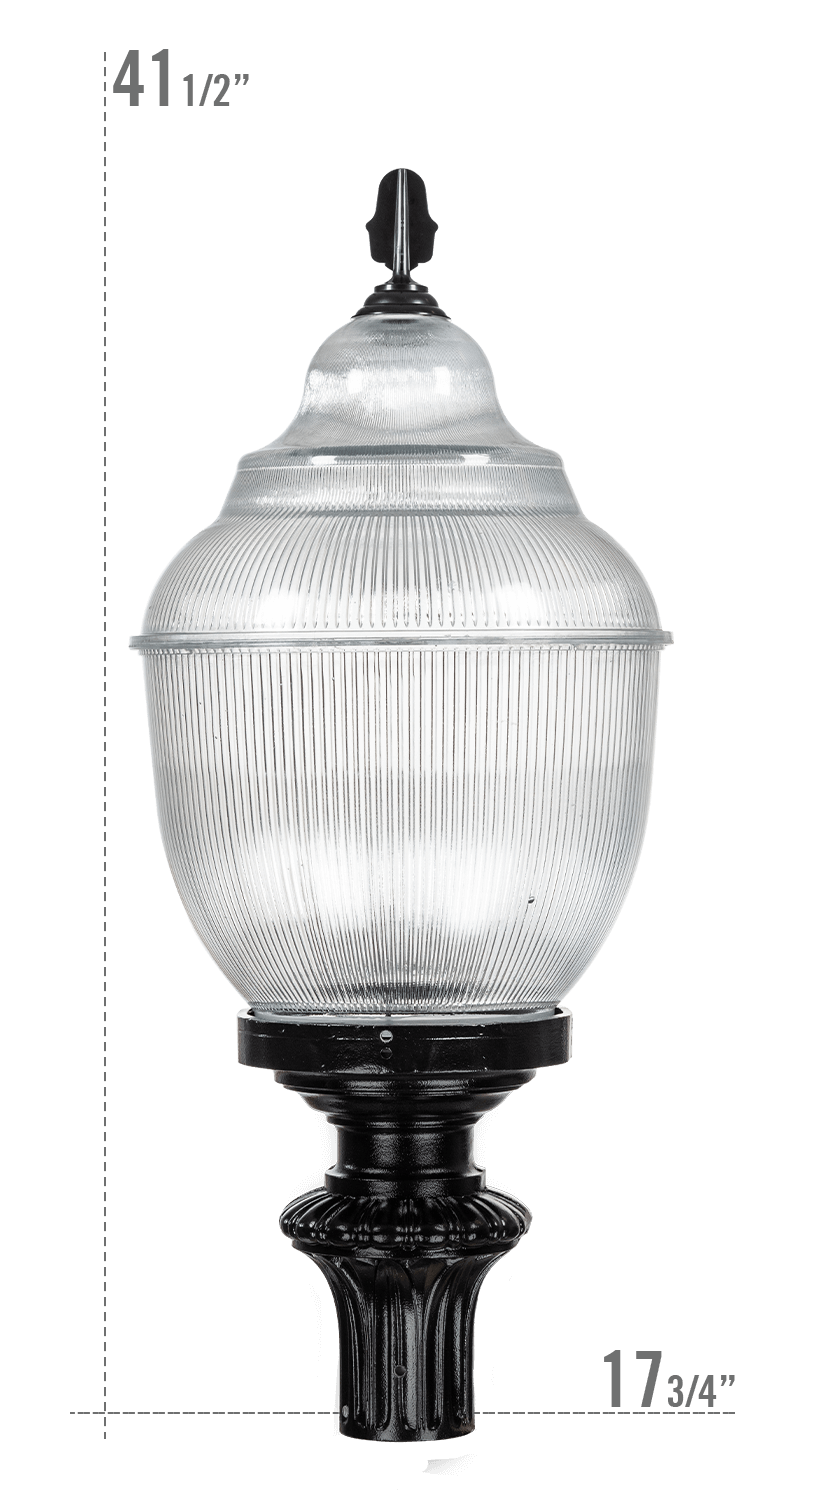 Washington LED Luminaire G637 Globe